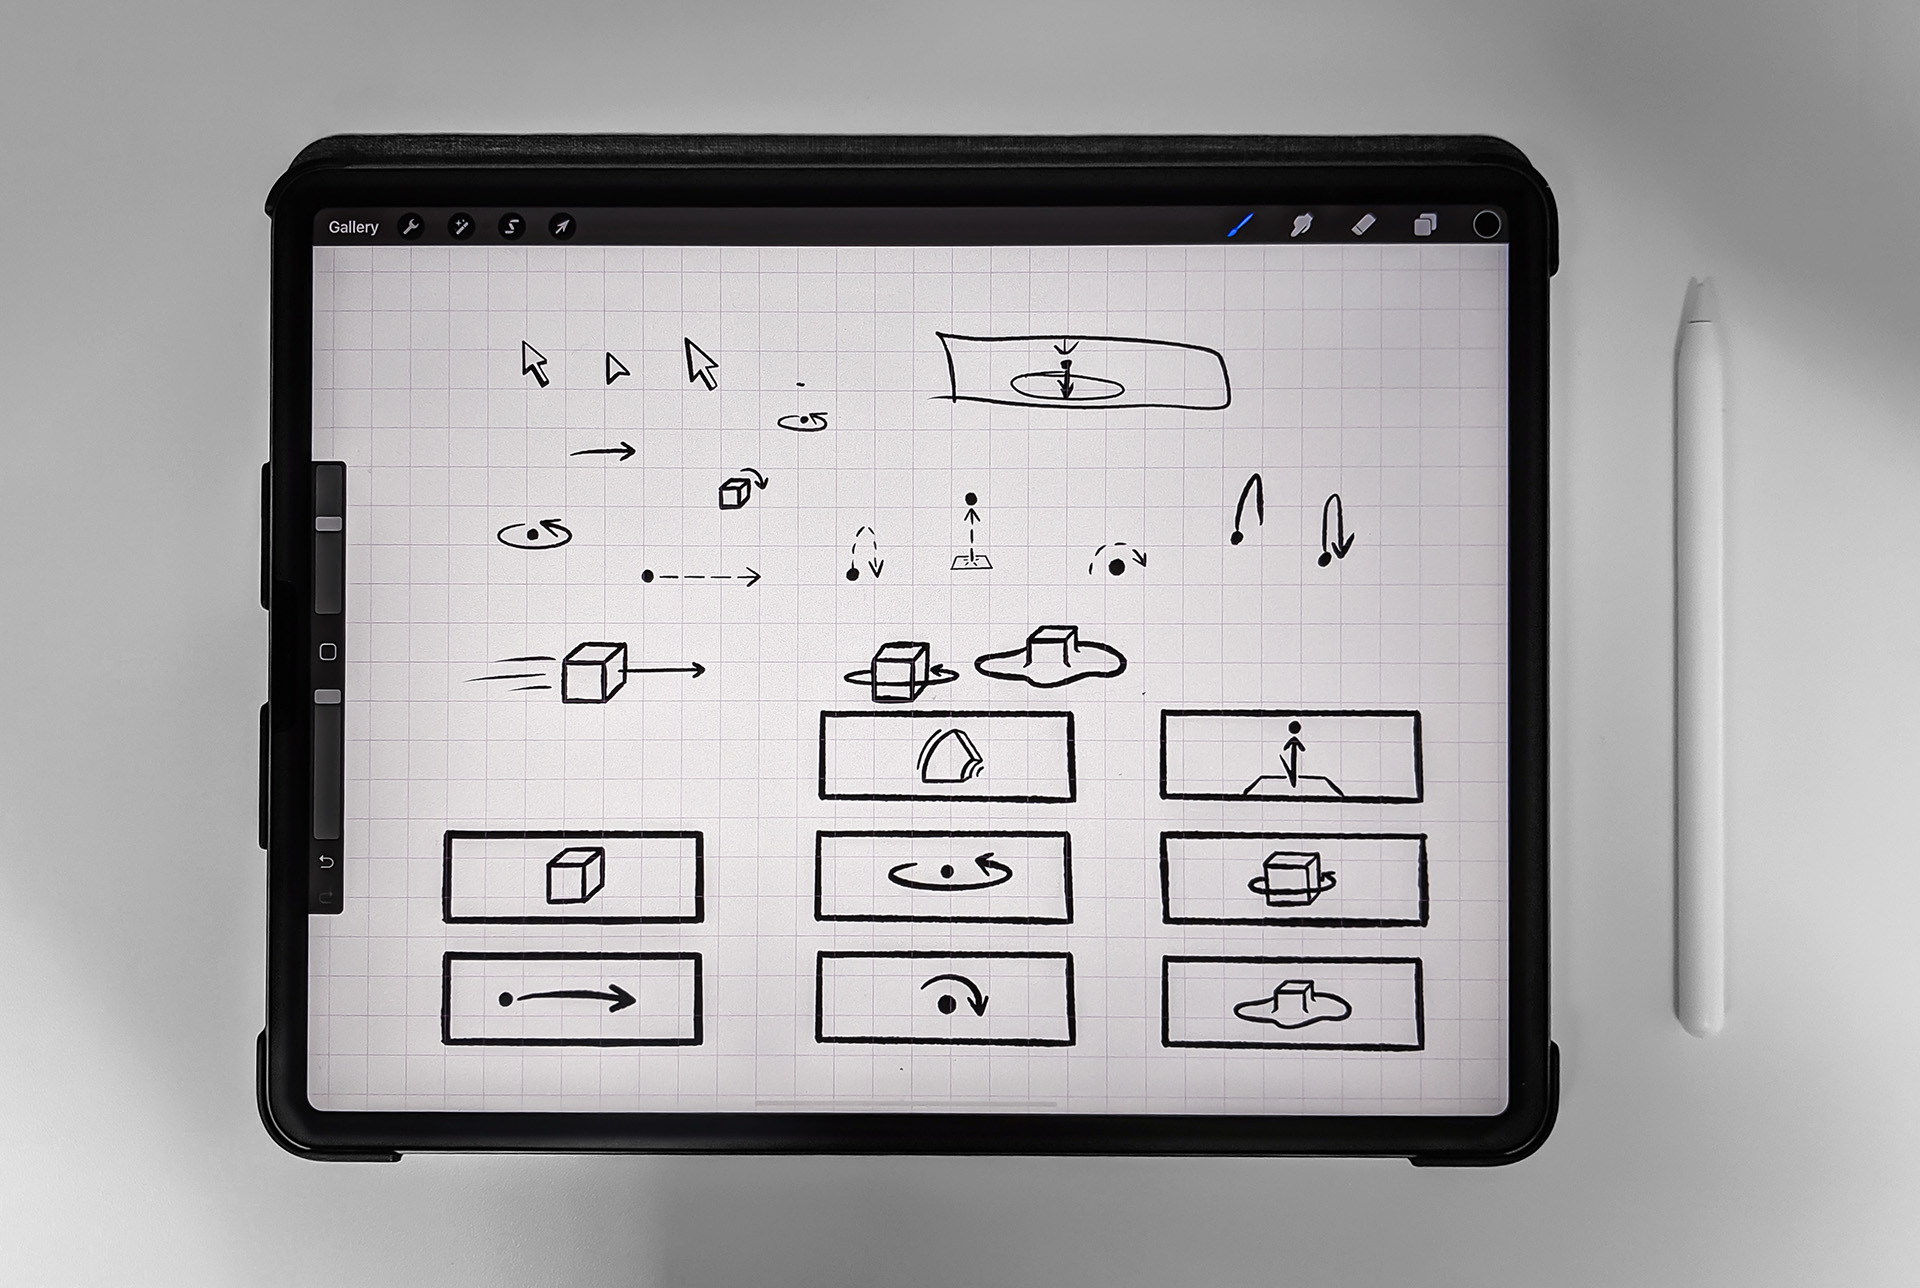 The application UI and still objects were created in Procreate.